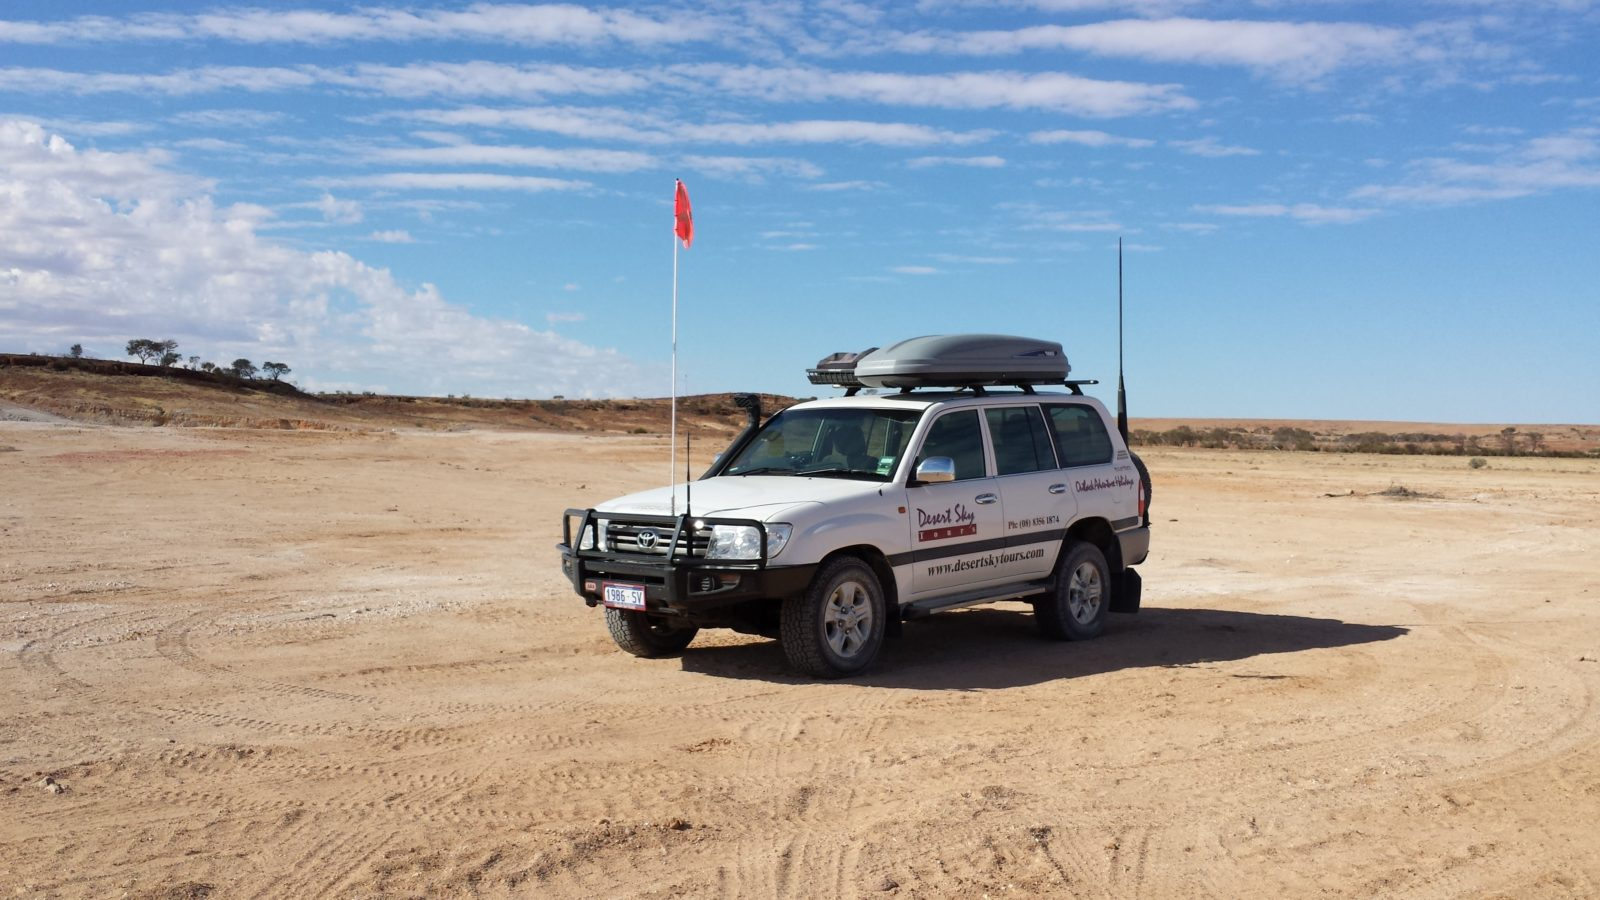 Desert Sky Tours Vehicle